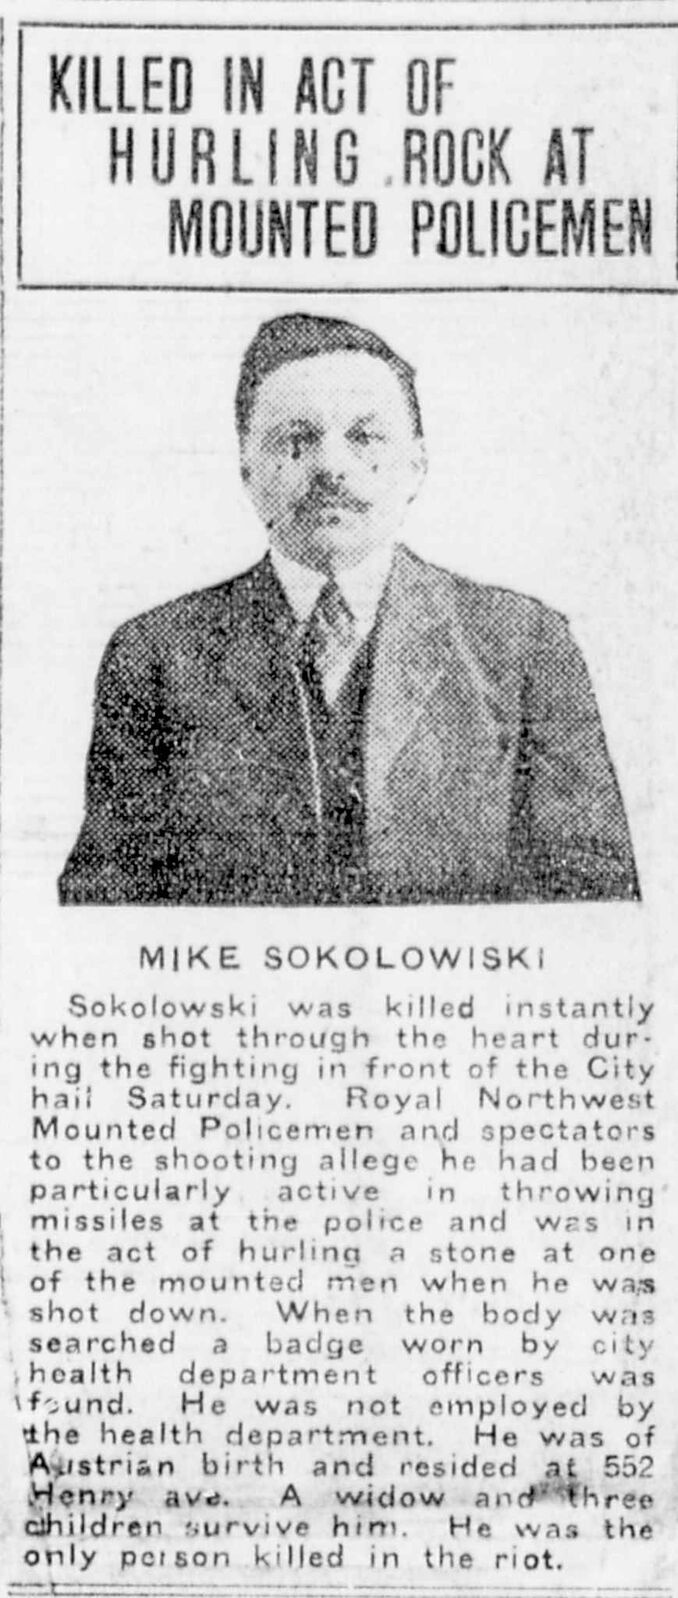 The Winnipeg Tribune story describing the death of Mike Sokolowski. Other media accounts suggested he was an innocent bystander.